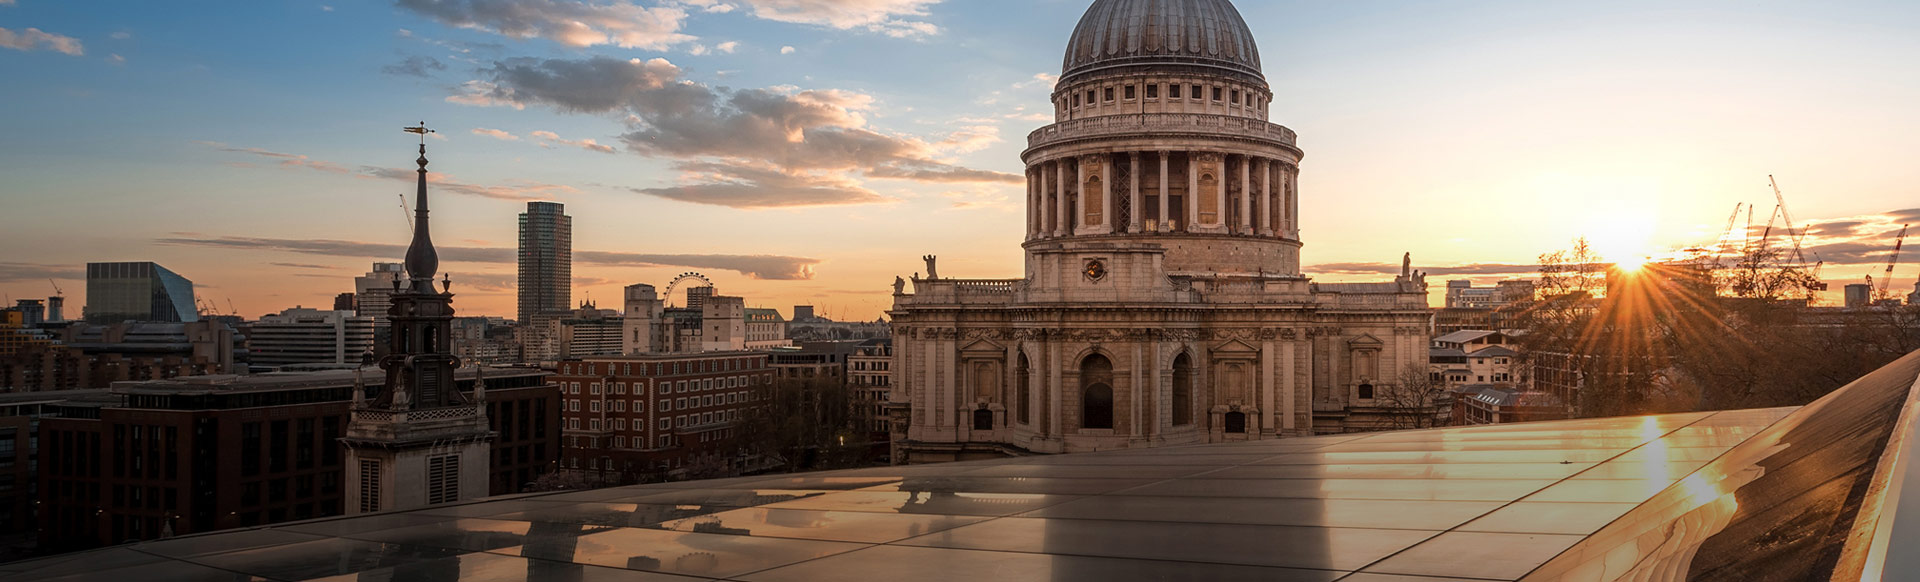 St Paul's Cathedral and London's skyline at sunset. Image courtesy of Shutterstock